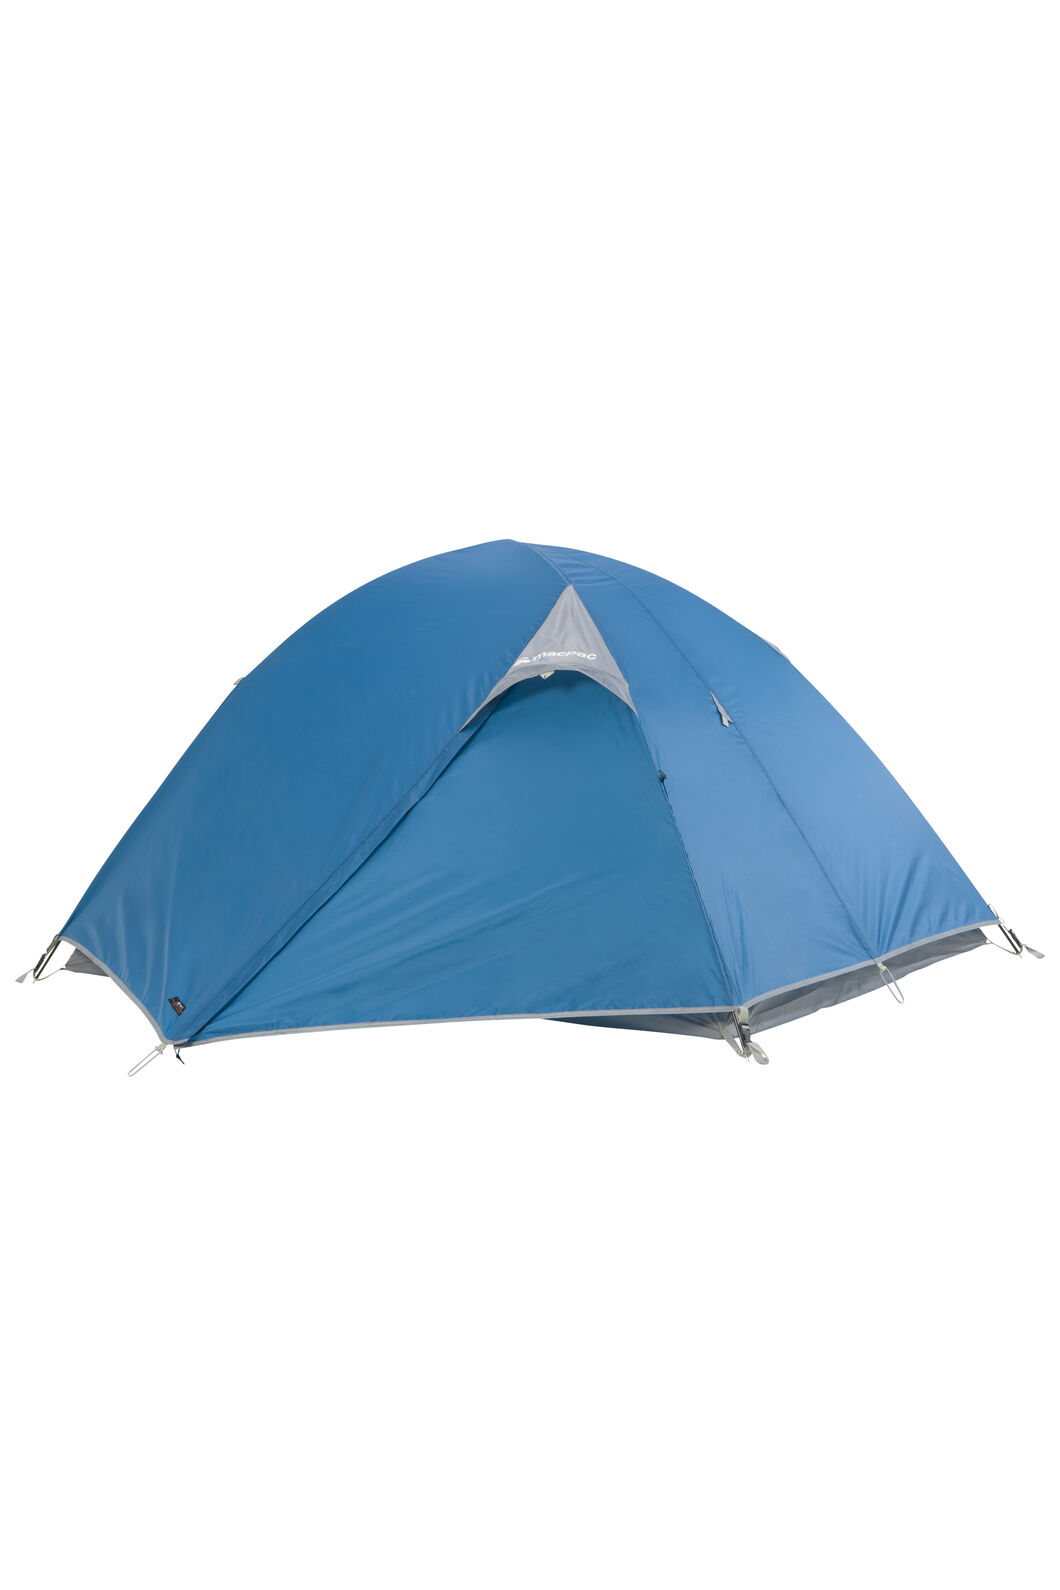 Apollo Camping Tent, Imperial Blue, hi-res